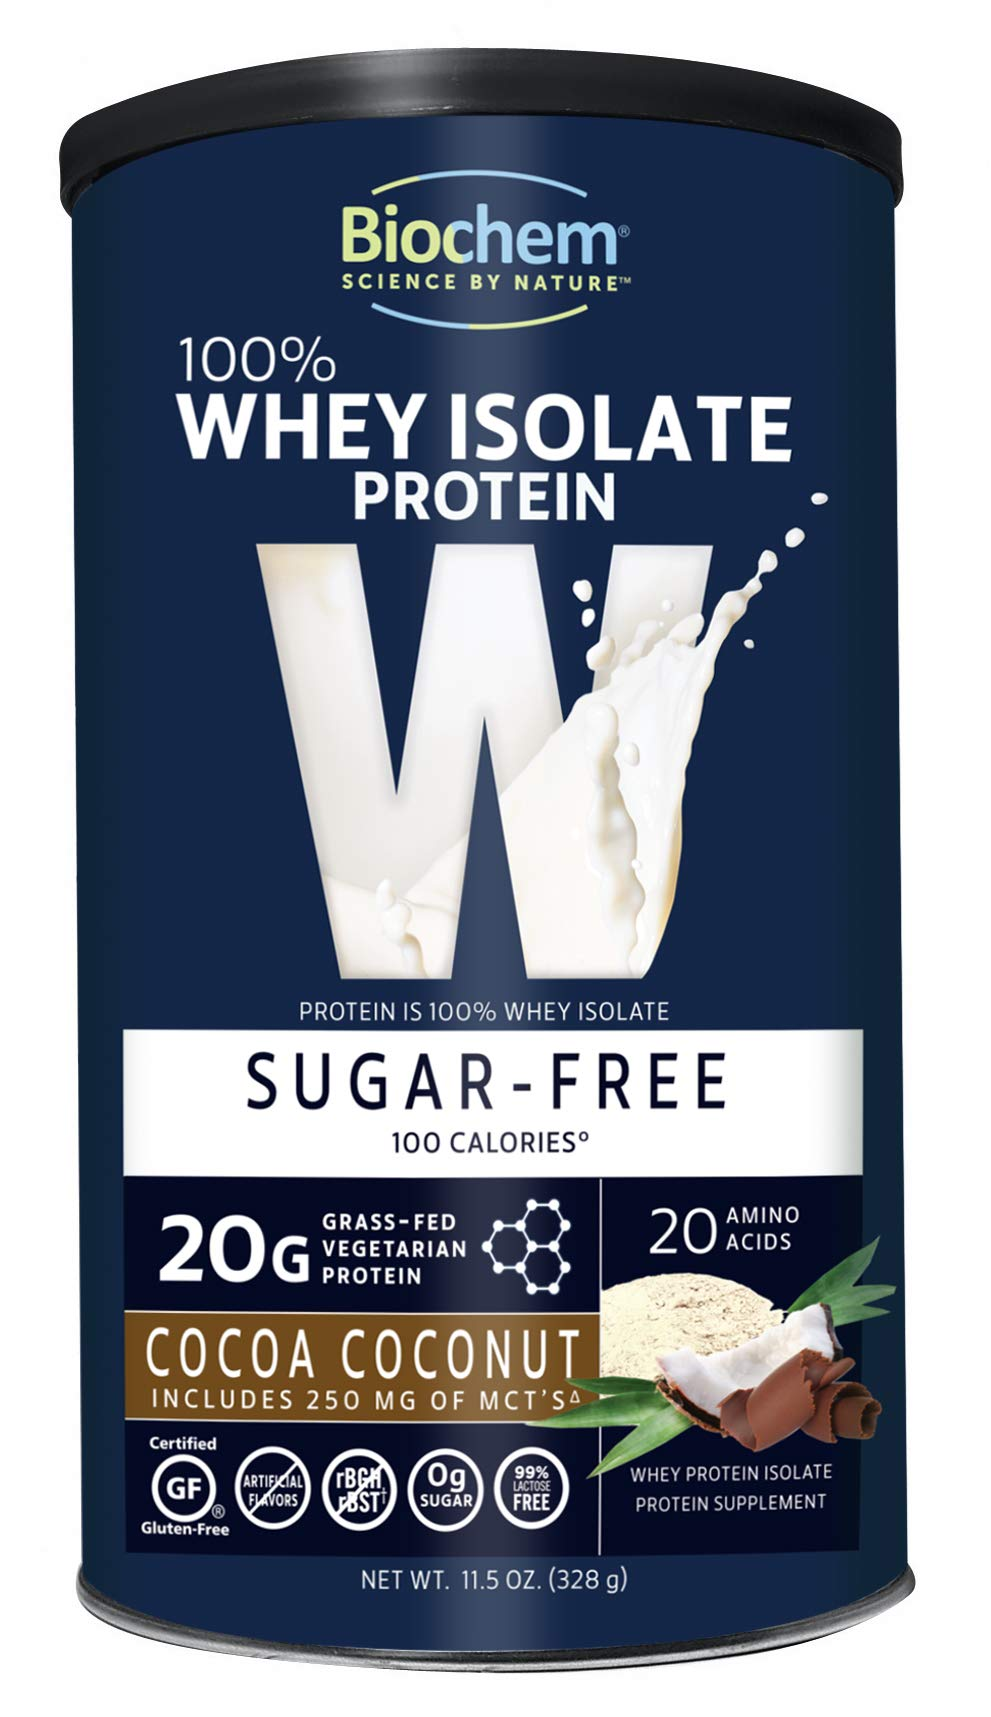 Biochem 100% Whey Isolate Protein - 11.5 oz - Cocoa Coconut Flavor - 20g Vegetarian Protein - Keto-Friendly - Amino Acids - May Help Support Immune System - Easy to Mix - Preworkout Shake